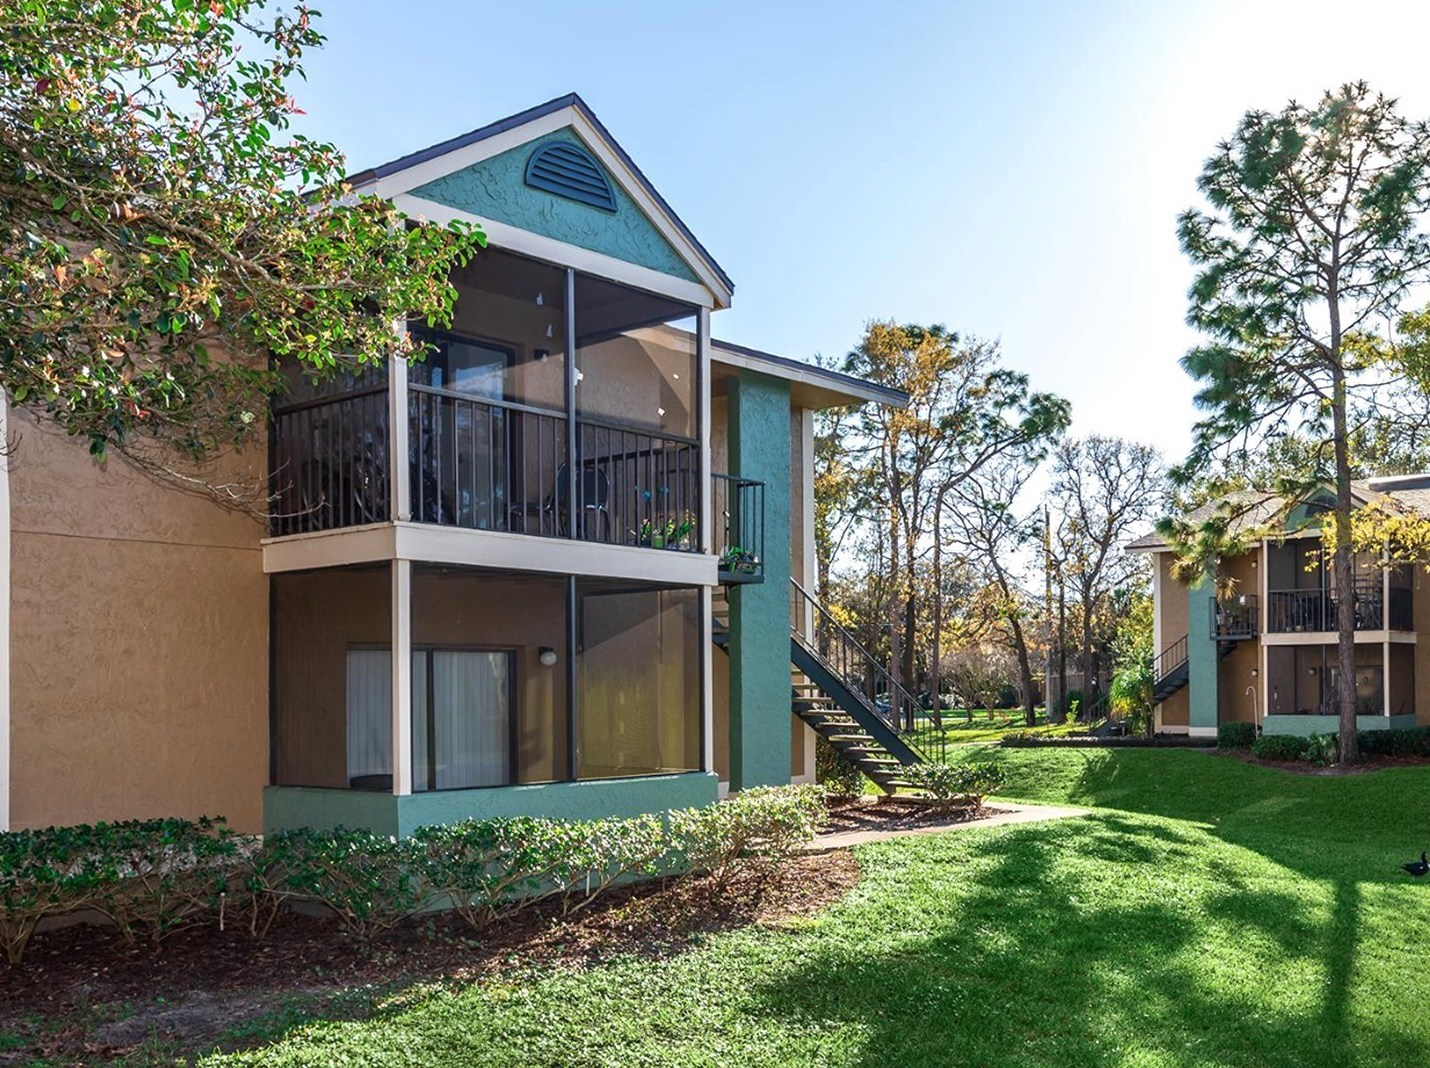 Main Street Residential Acquires 104-Unit Belle Rive Apartment Community in Submarket of Jacksonville, Florida for $13.13 Million